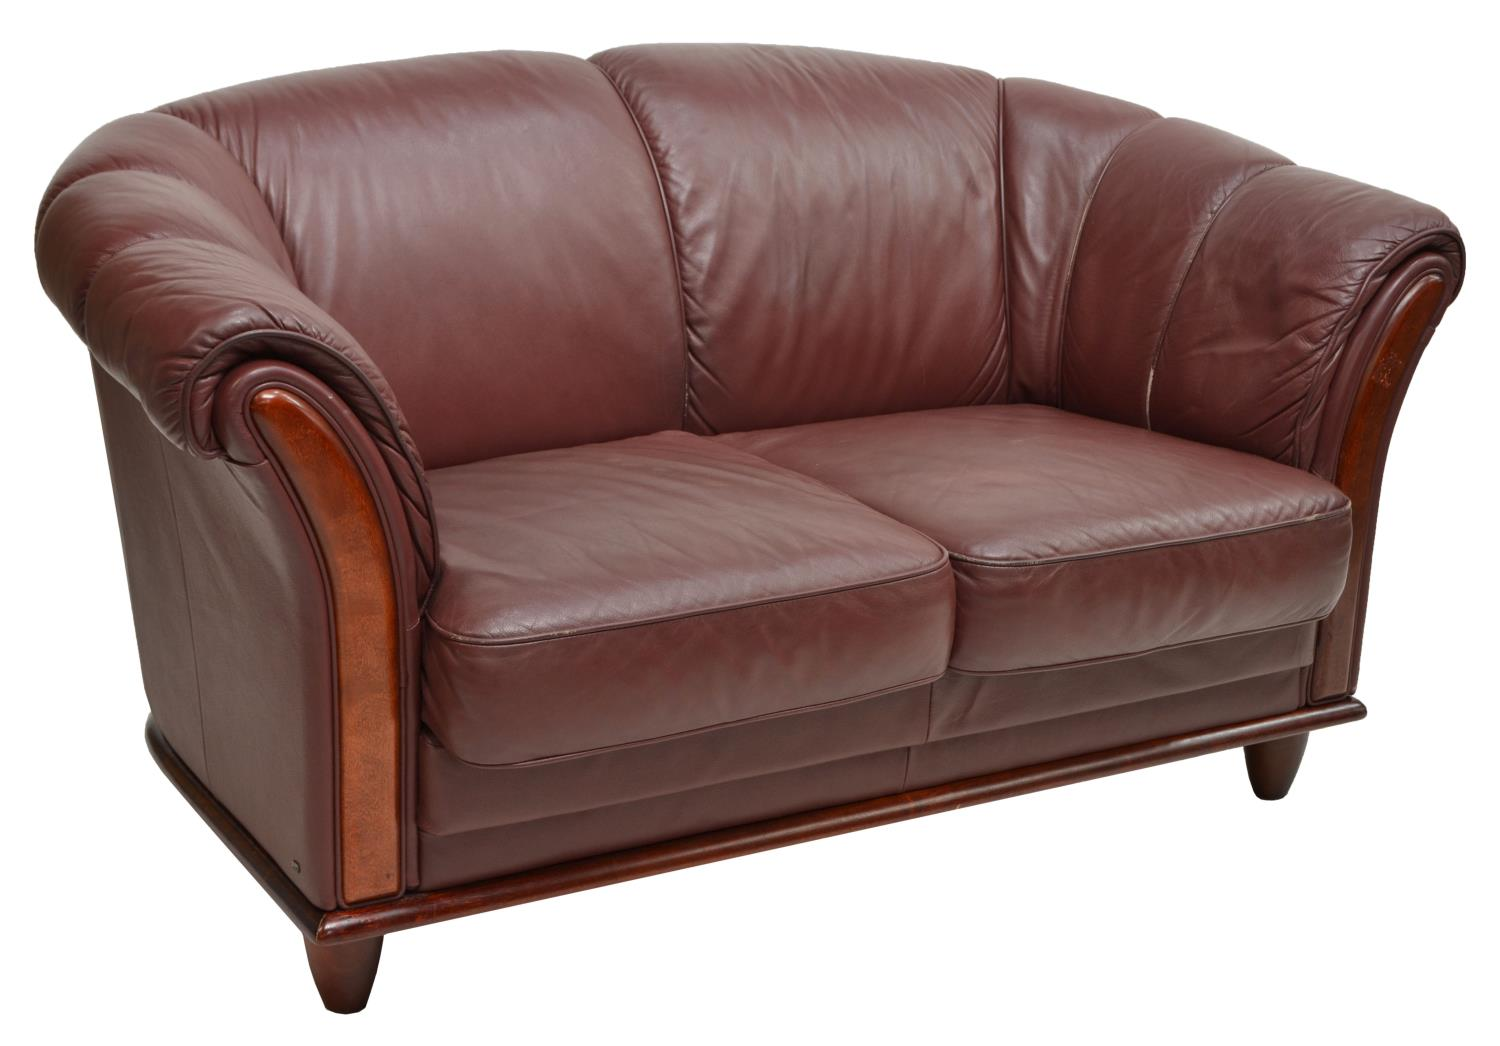 Danish Modern Burgundy Leather Loveseat C 1970 March 2016 Estates Auction Day One Austin